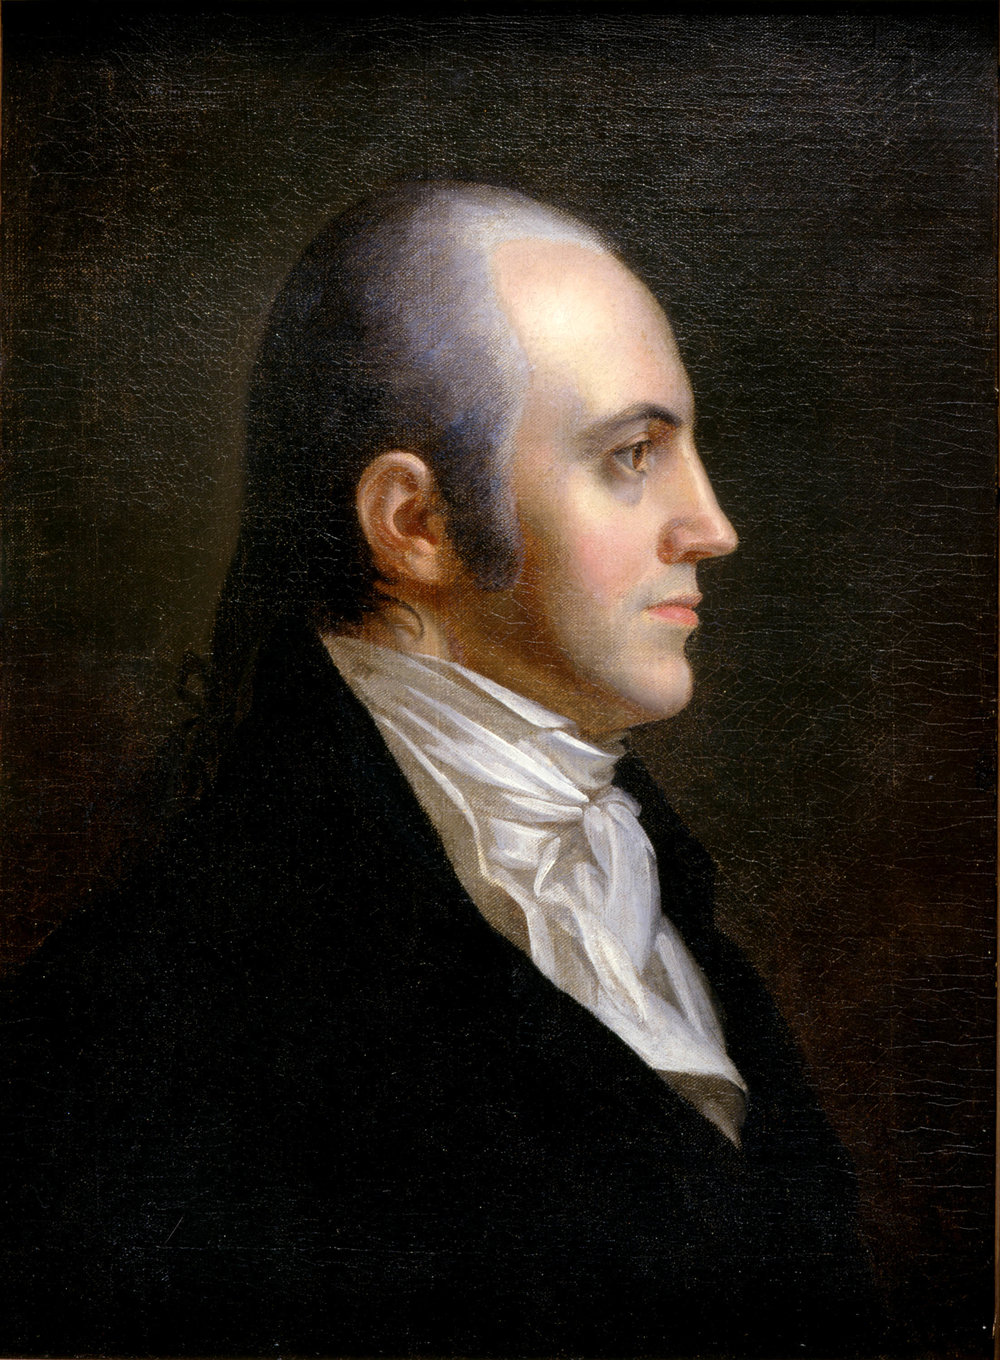 Aaron Burr was nearly President before he killed Lin-Manuel Miranda